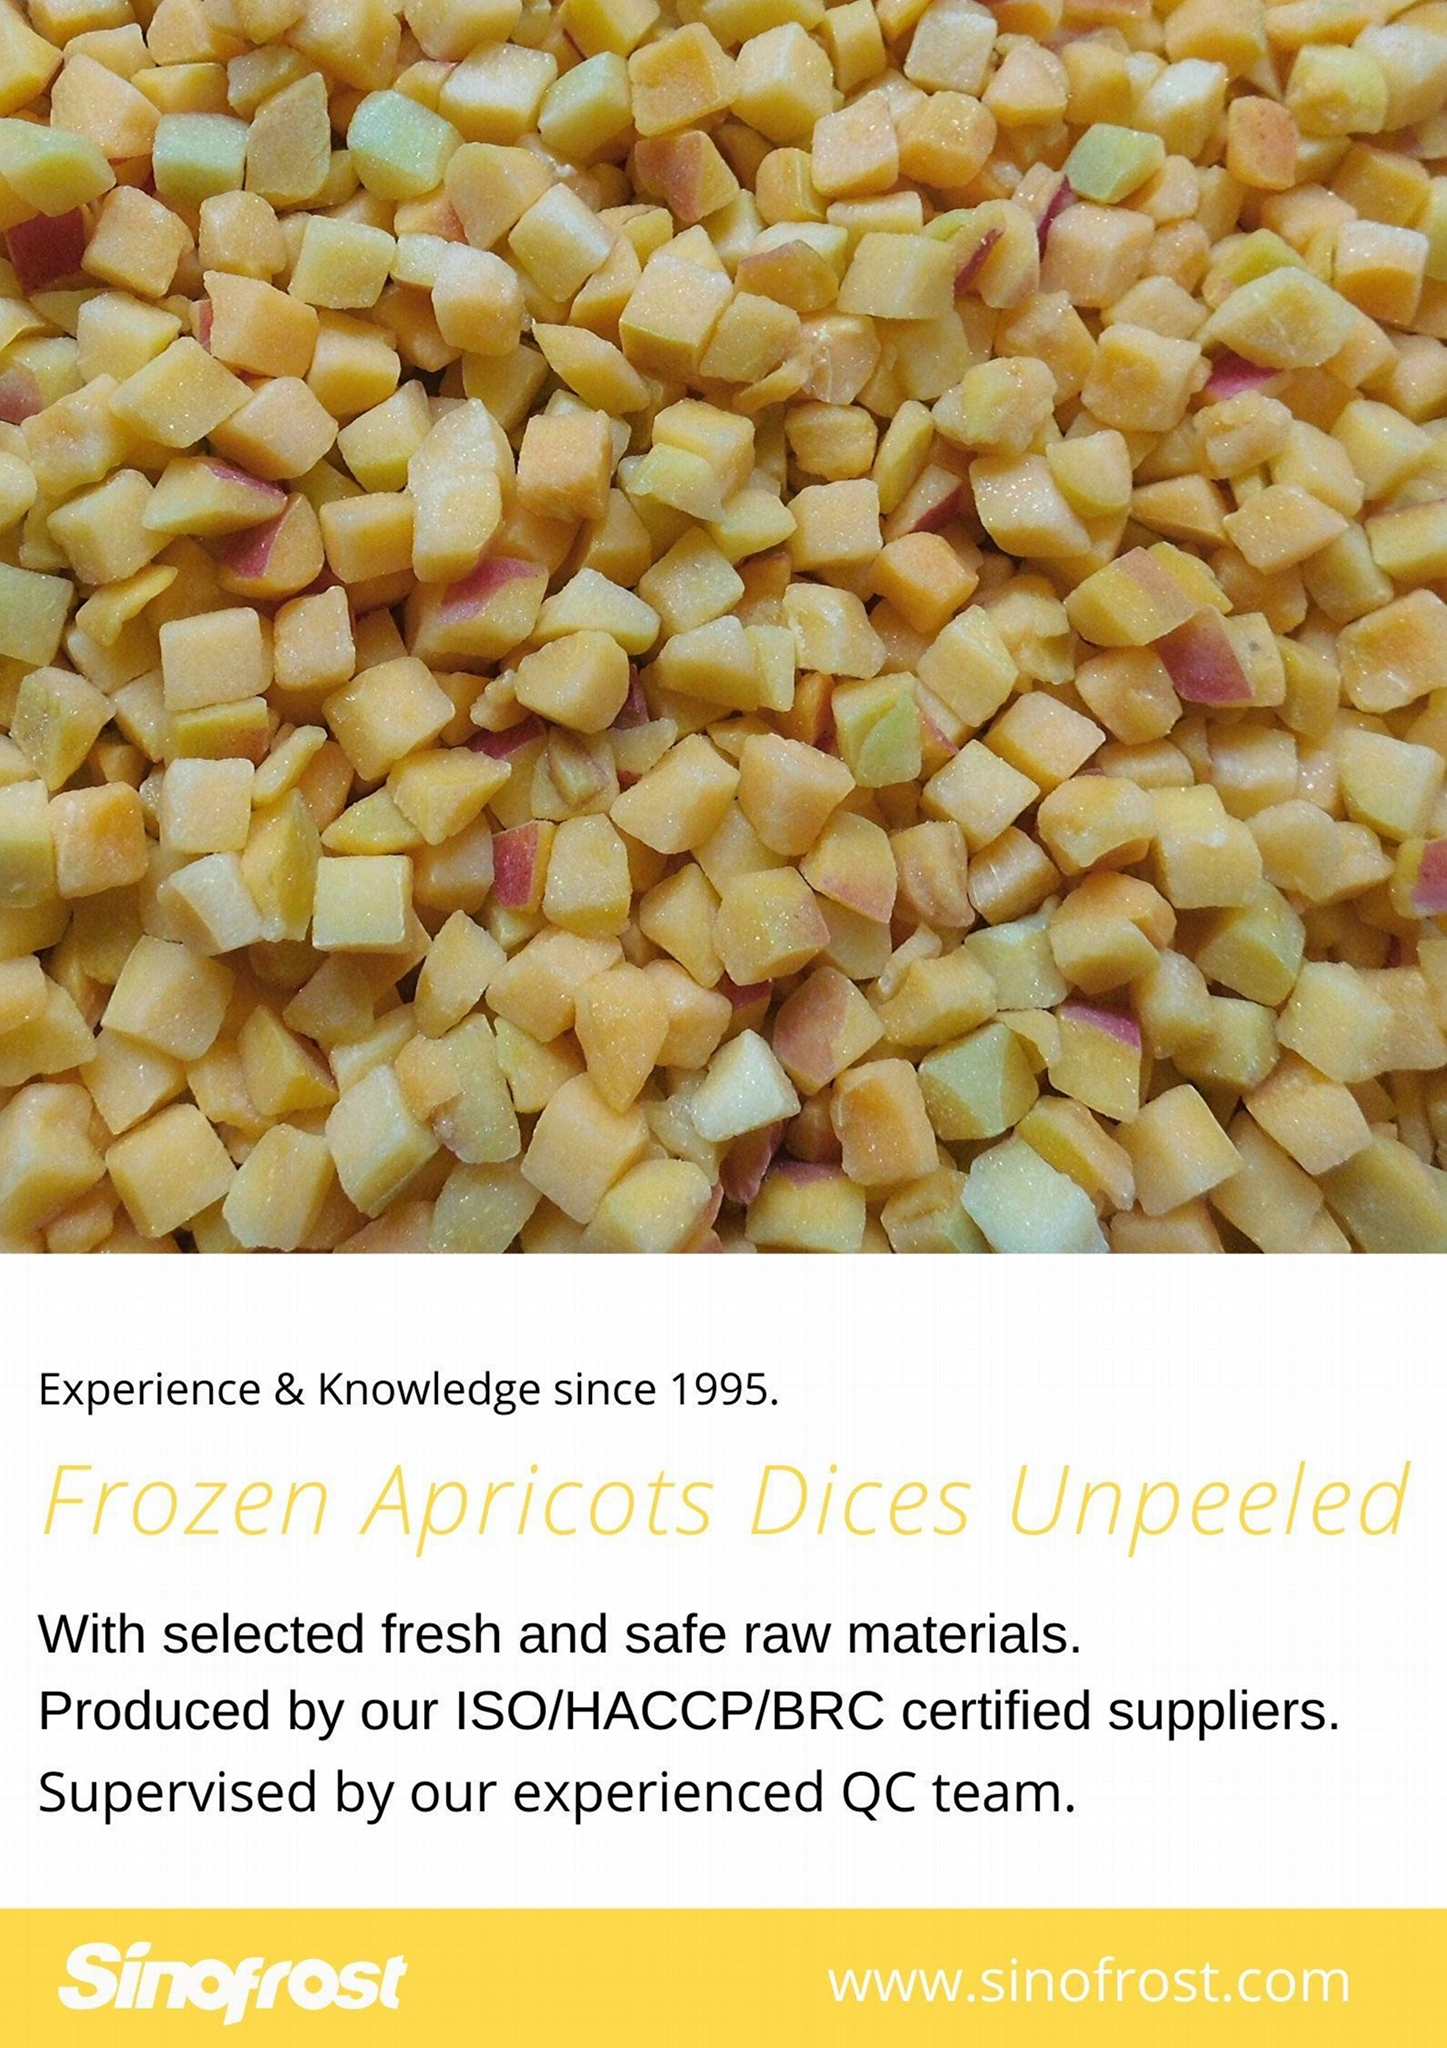 IQF Apricot Dices,IQF Diced Apricots,Frozen Apricots Cubes,without peel,b 20